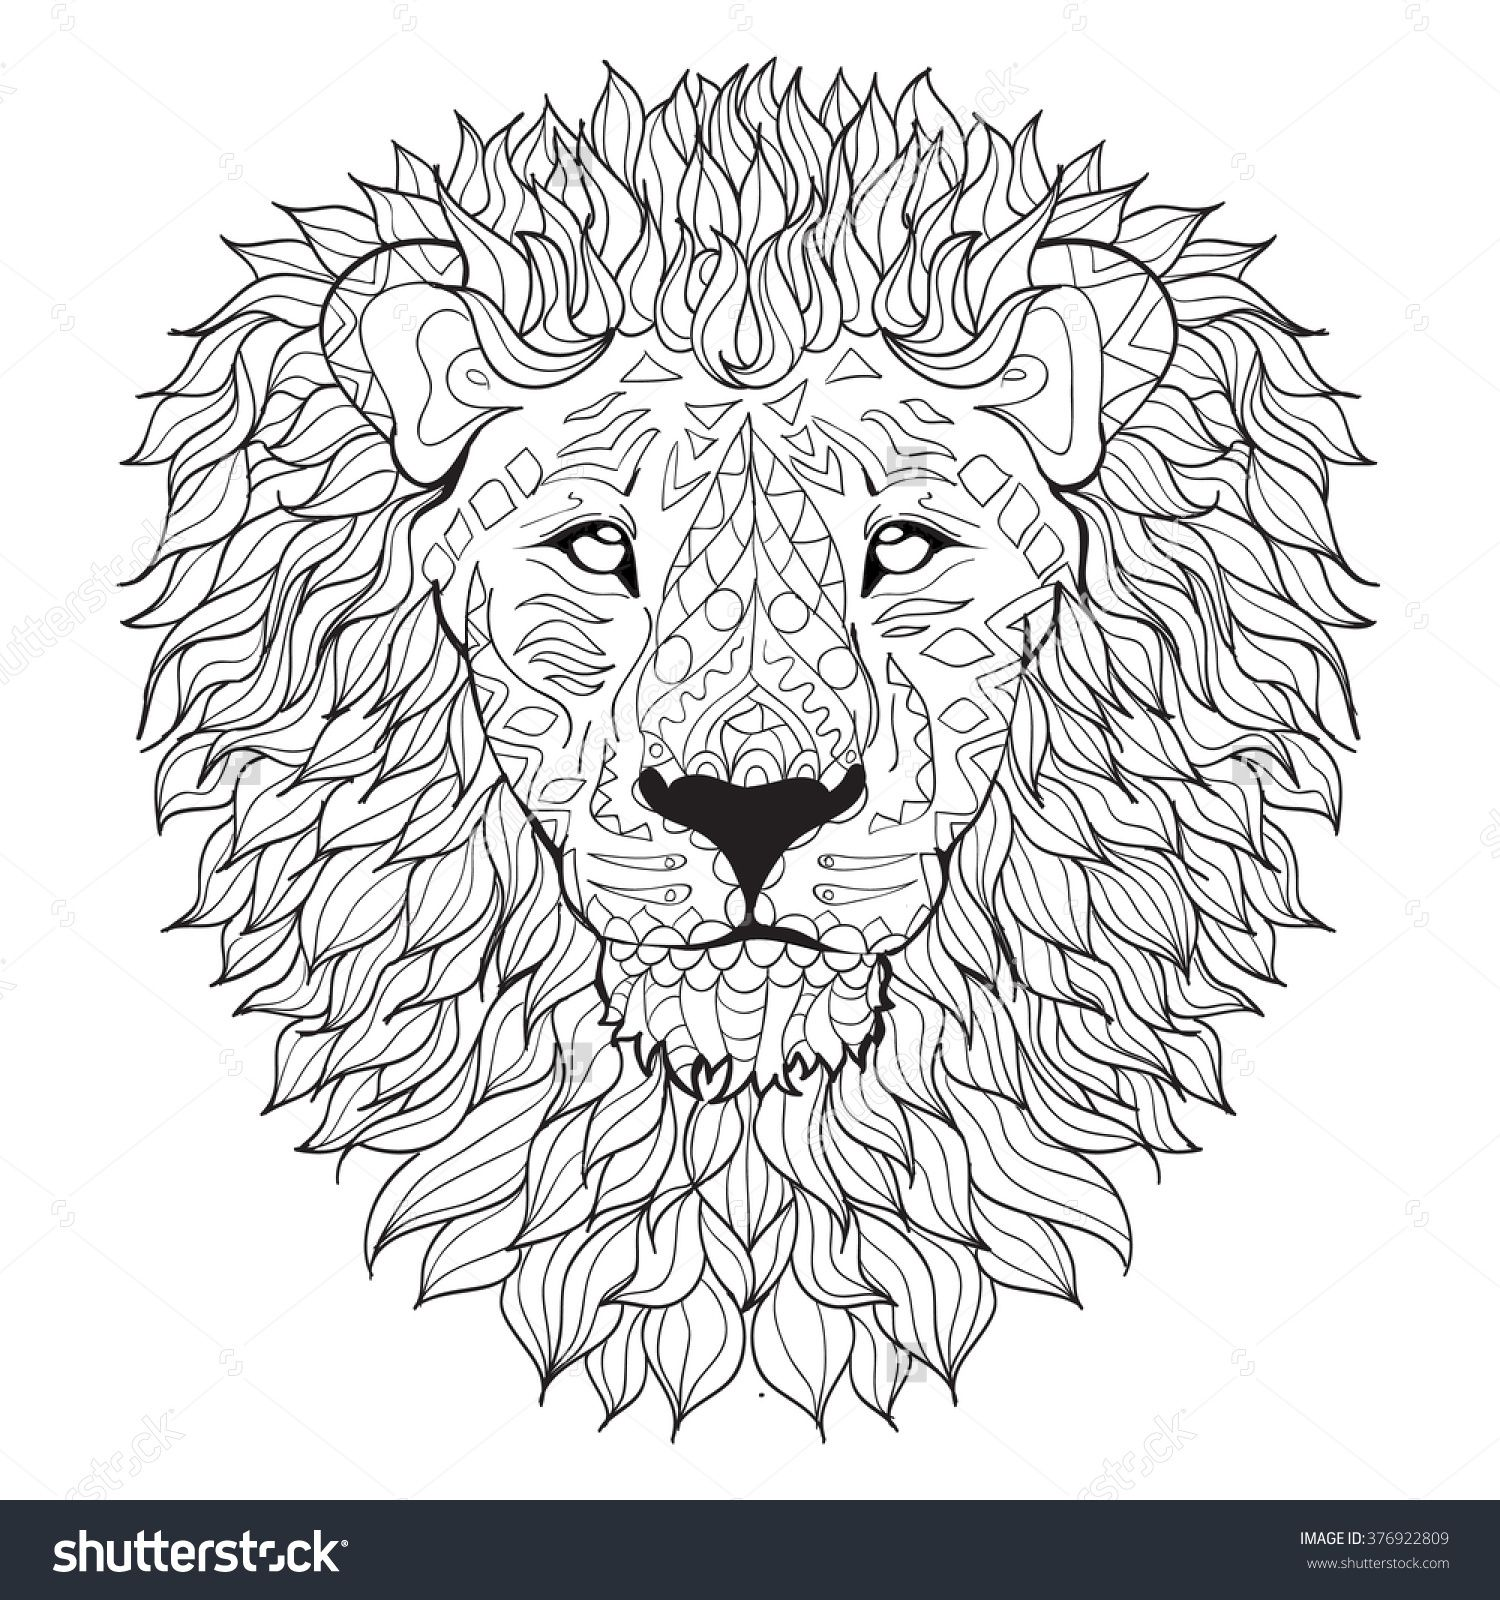 Coloring Pages Lion Head. Hand Drawn Lion Head  Isolated On Transparent Background Anti Stress Coloring Page Vector Monochrome